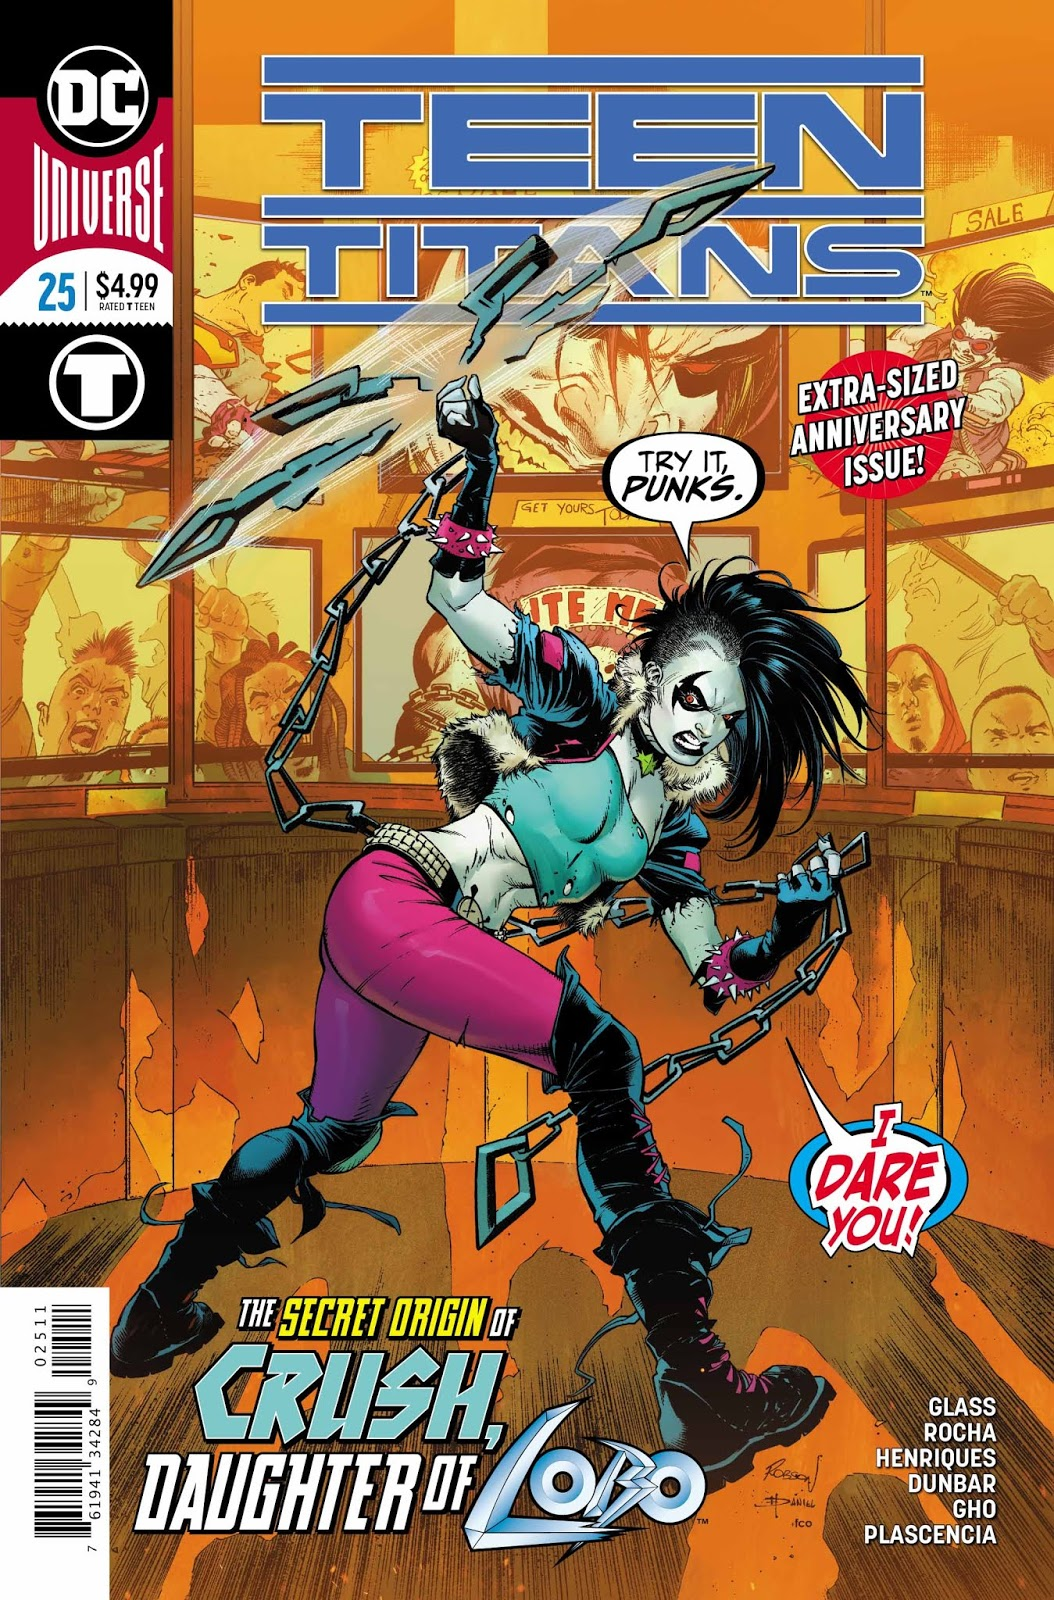 Weird Science DC Comics: Teen Titans #25 Review and **SPOILERS**